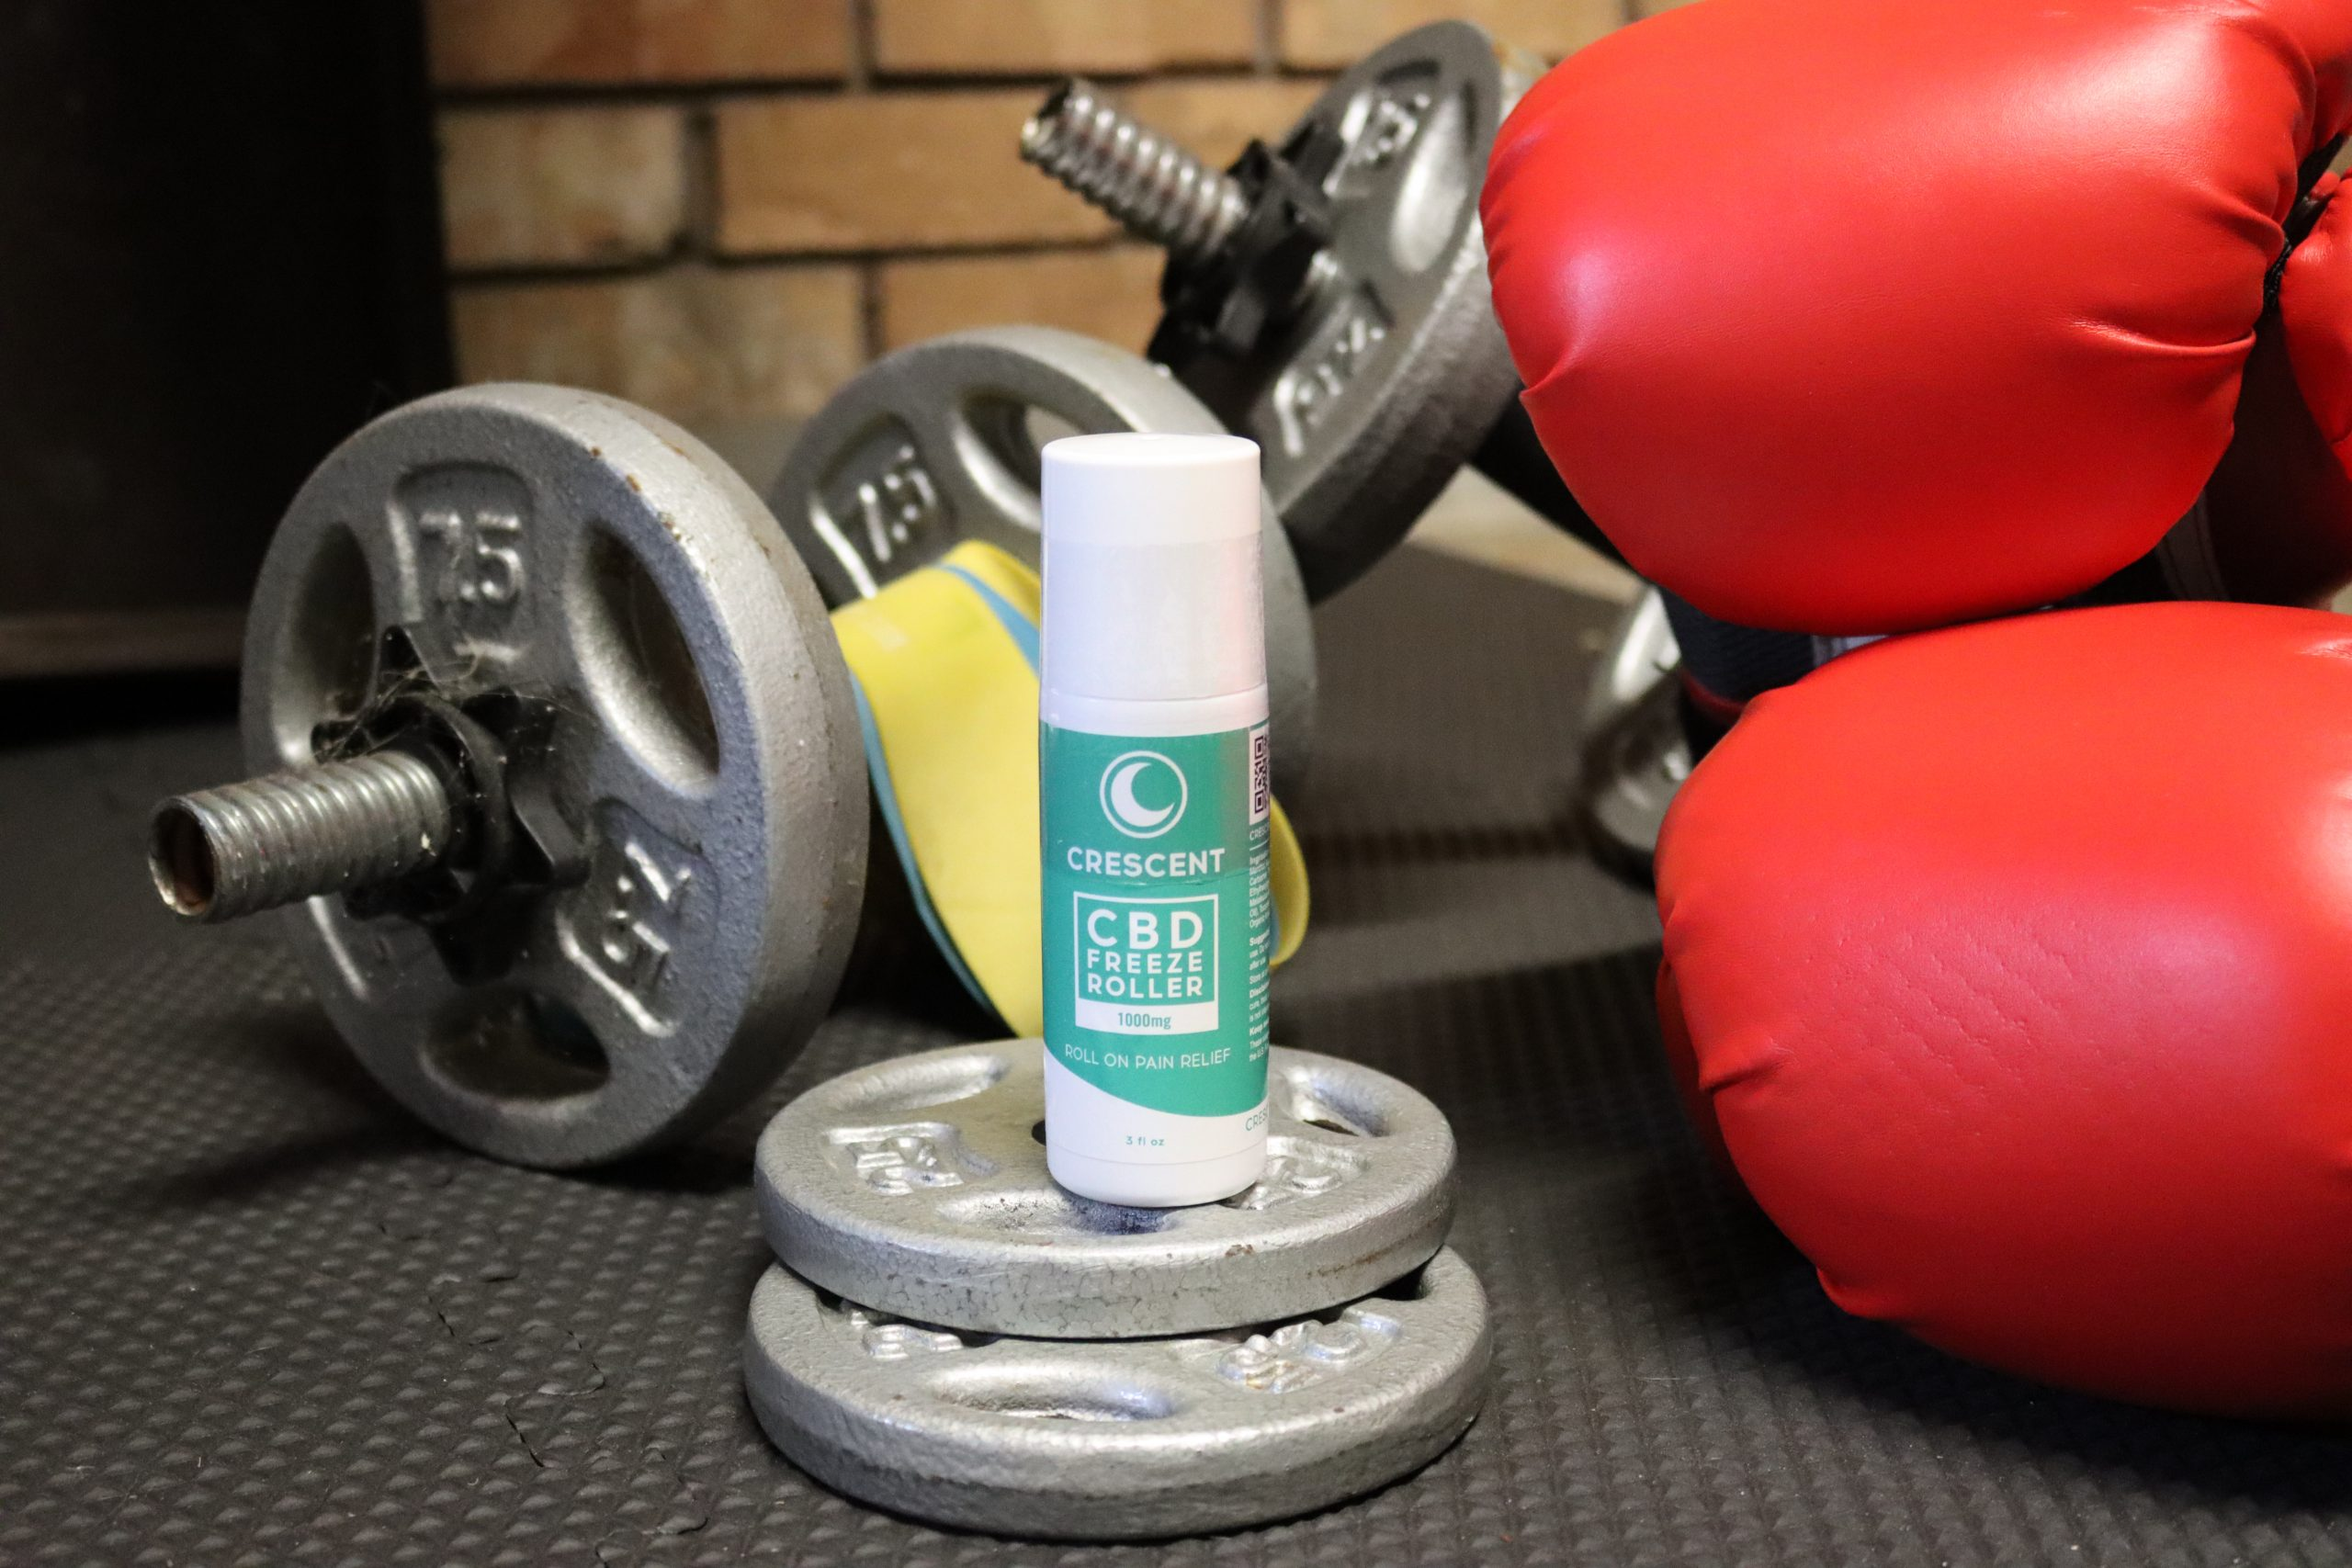 CBD Freeze-Roll on at the Gym